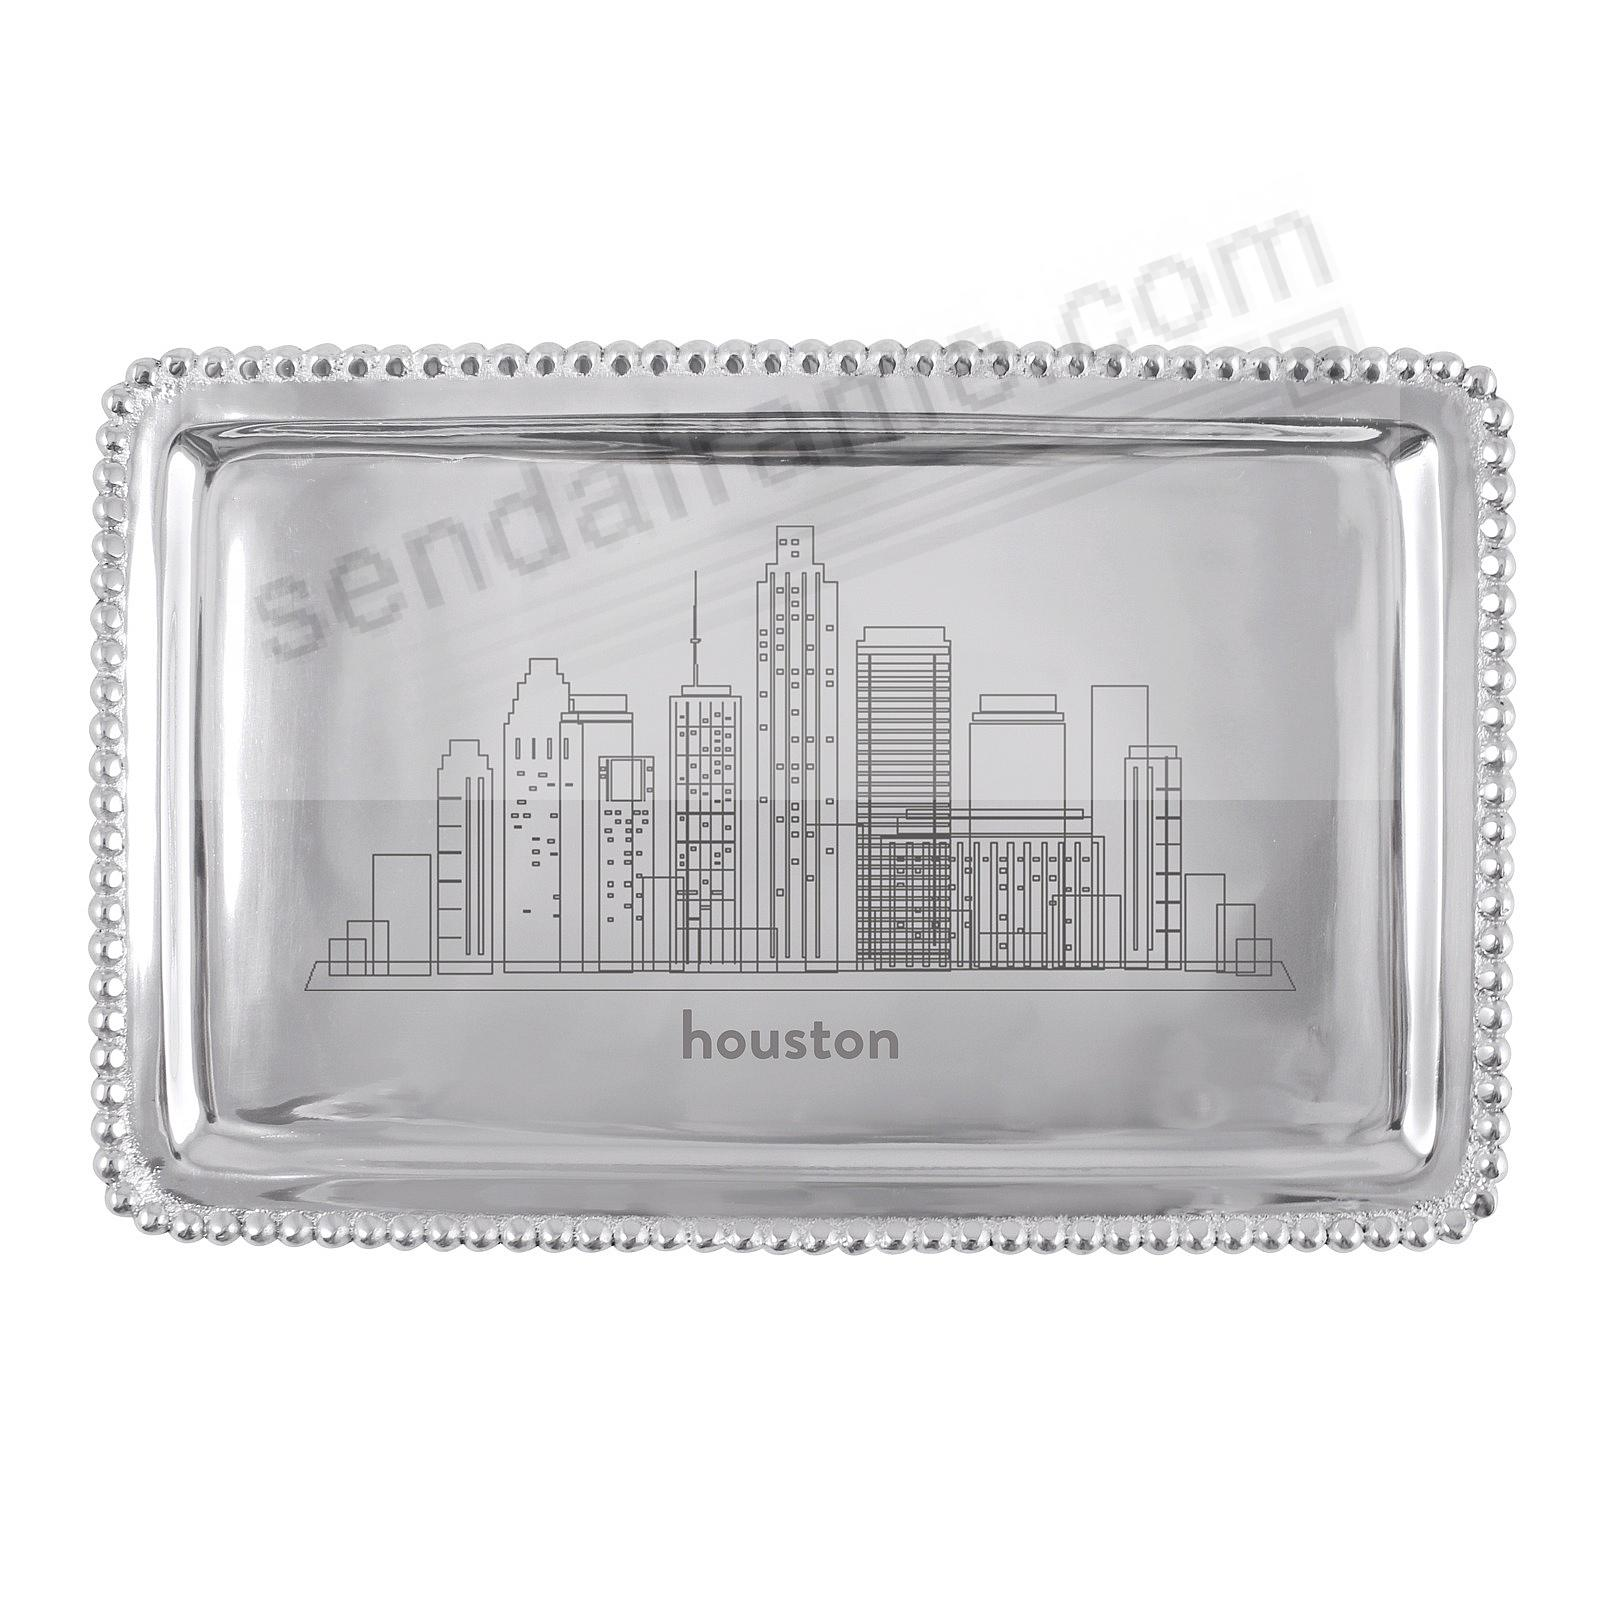 The HOUSTON-TX CITYSCAPE BEADED BUFFET TRAY crafted by Mariposa®